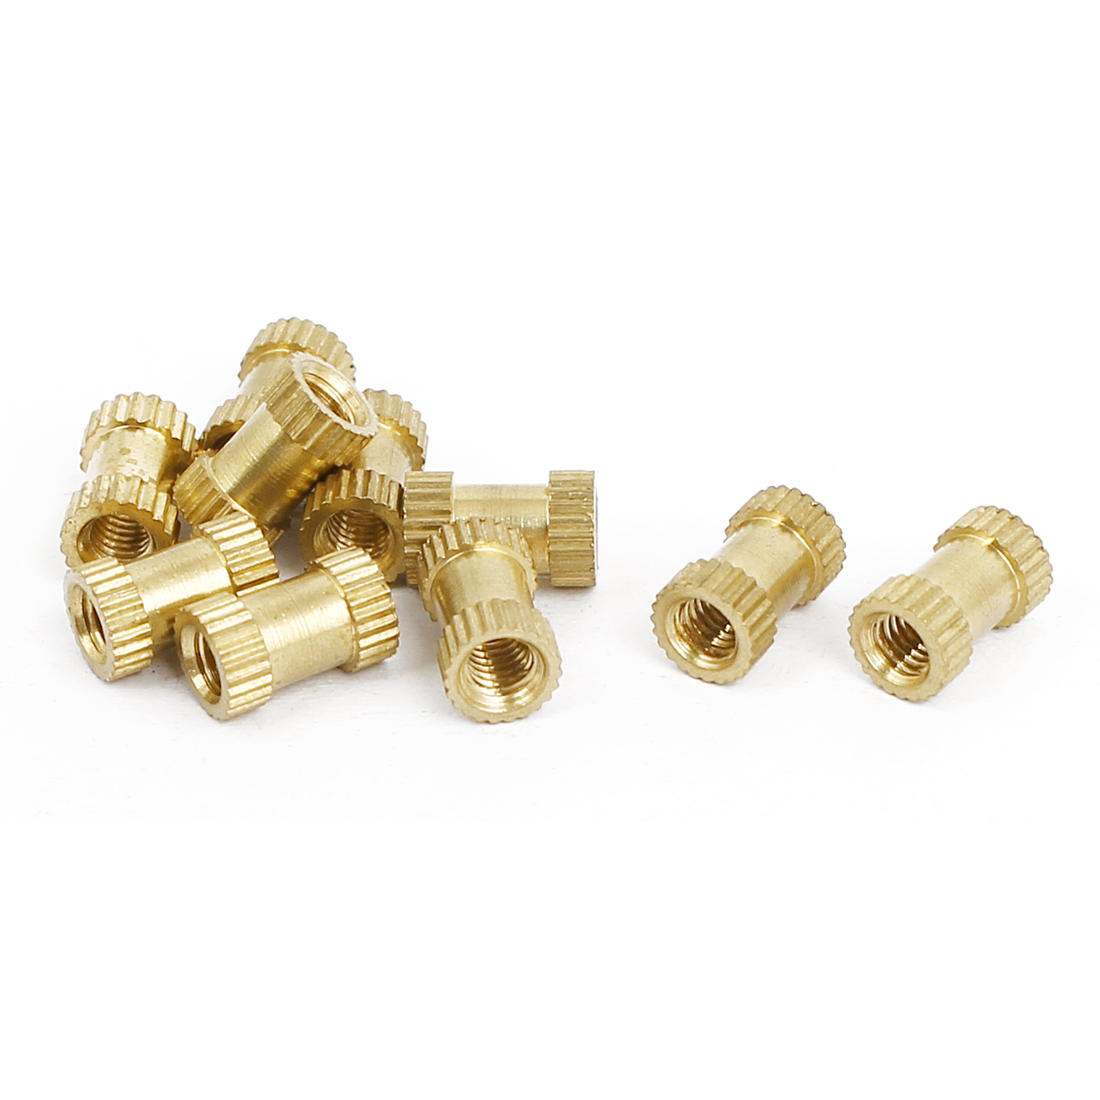 M3x8mmx5mm Female Threaded Brass Knurled Insert Embedded Nuts Gold Tone 10pcs